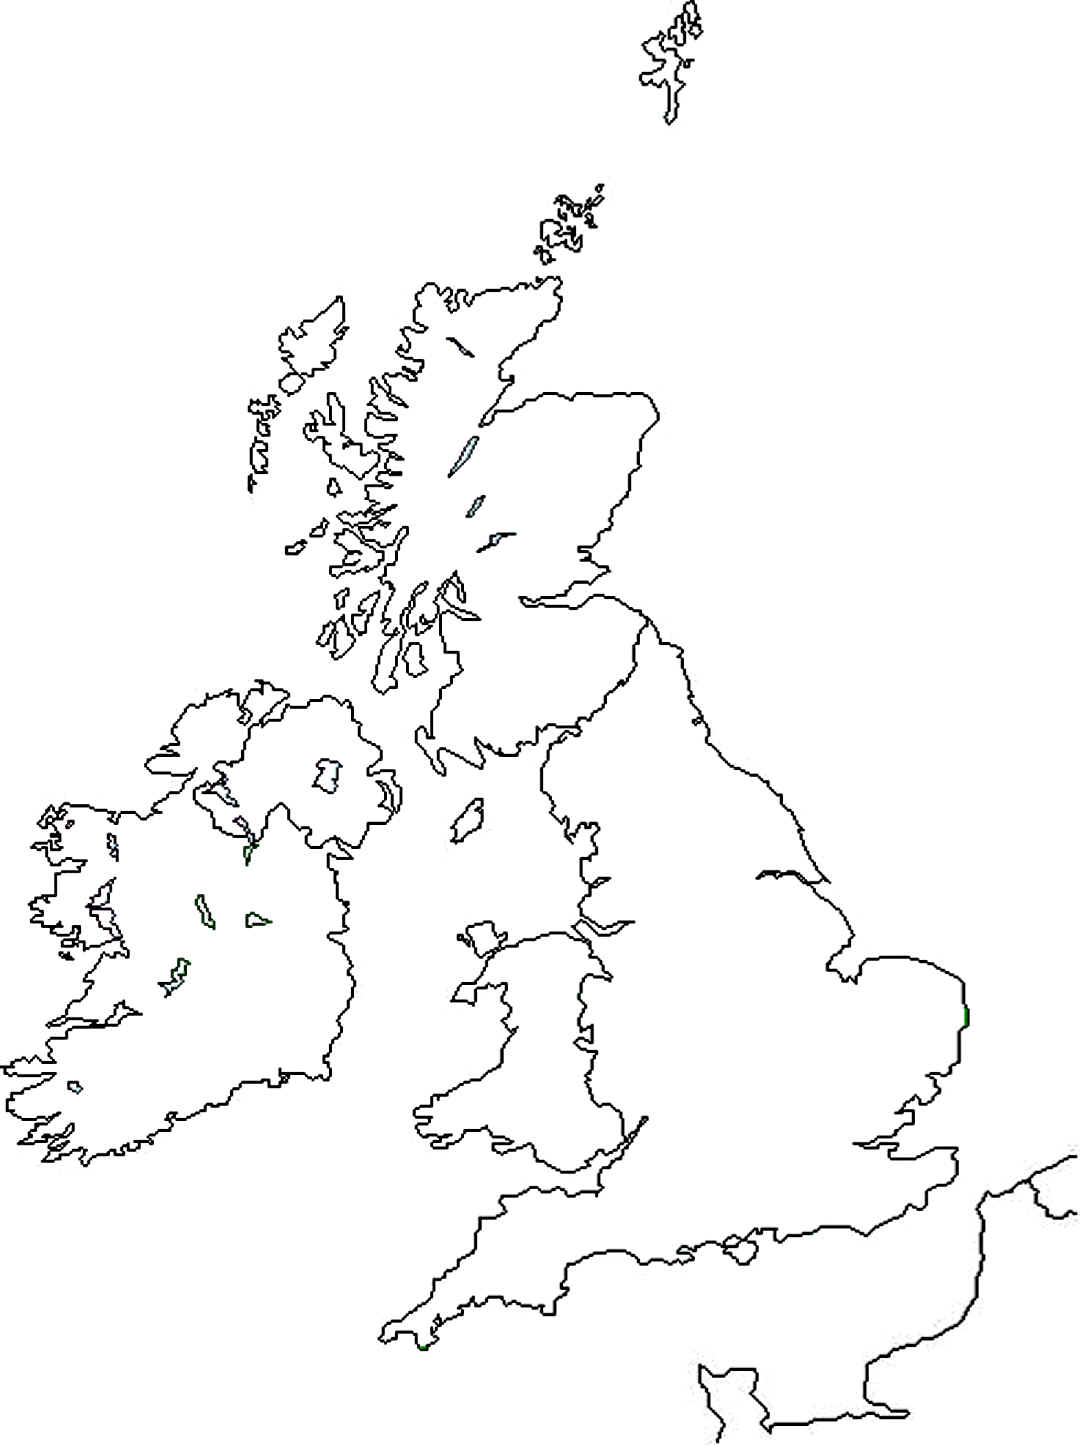 United Kingdom Counties Outline Map